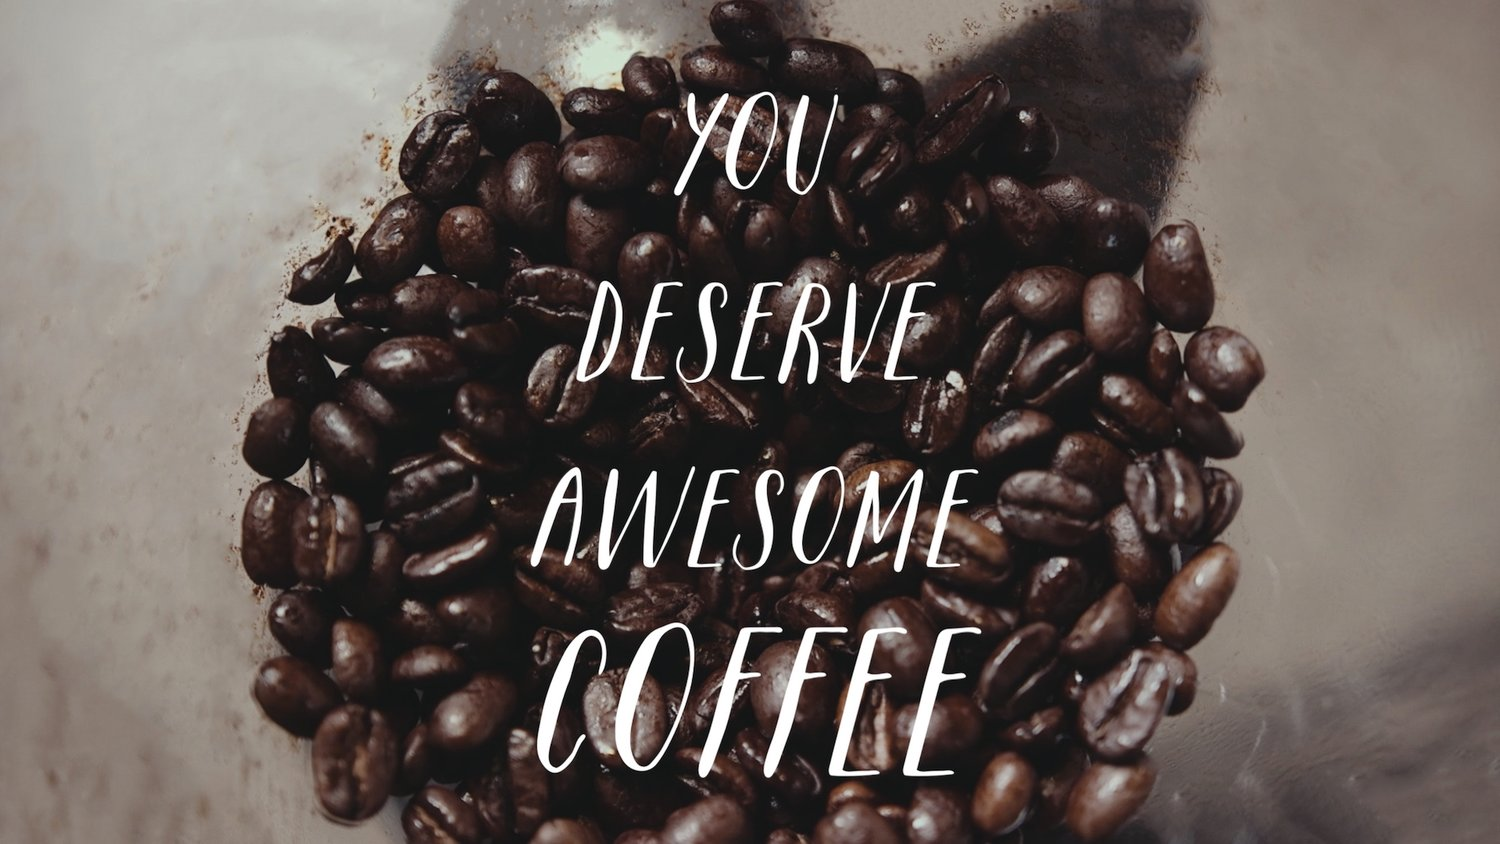 YOU DESERVE AWESOME COFFEE